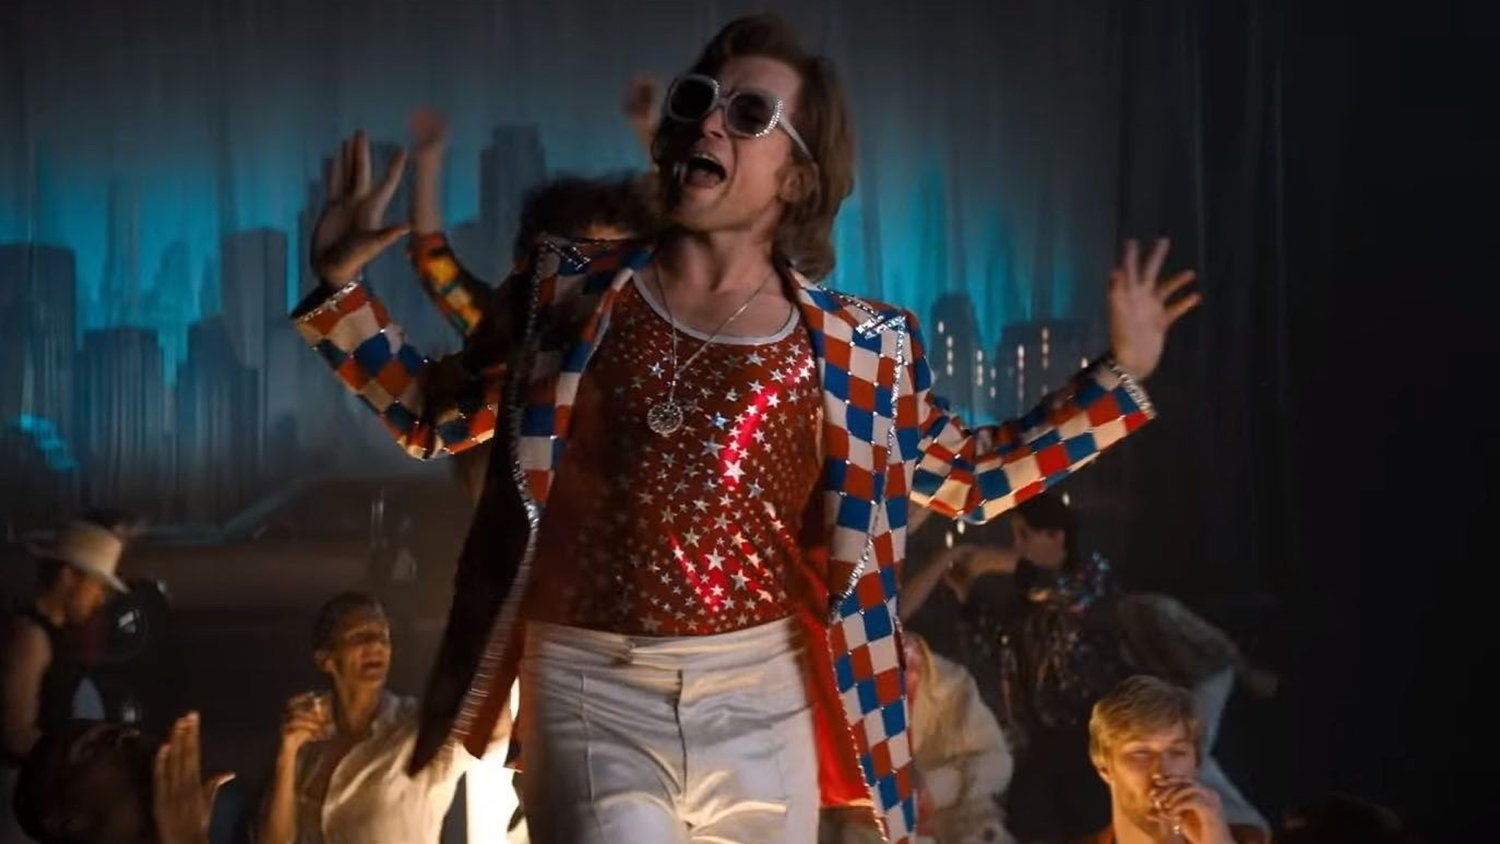 Taron Egerton stars as Elton John in Dexter Fletcher's biopic of the queer pop icon